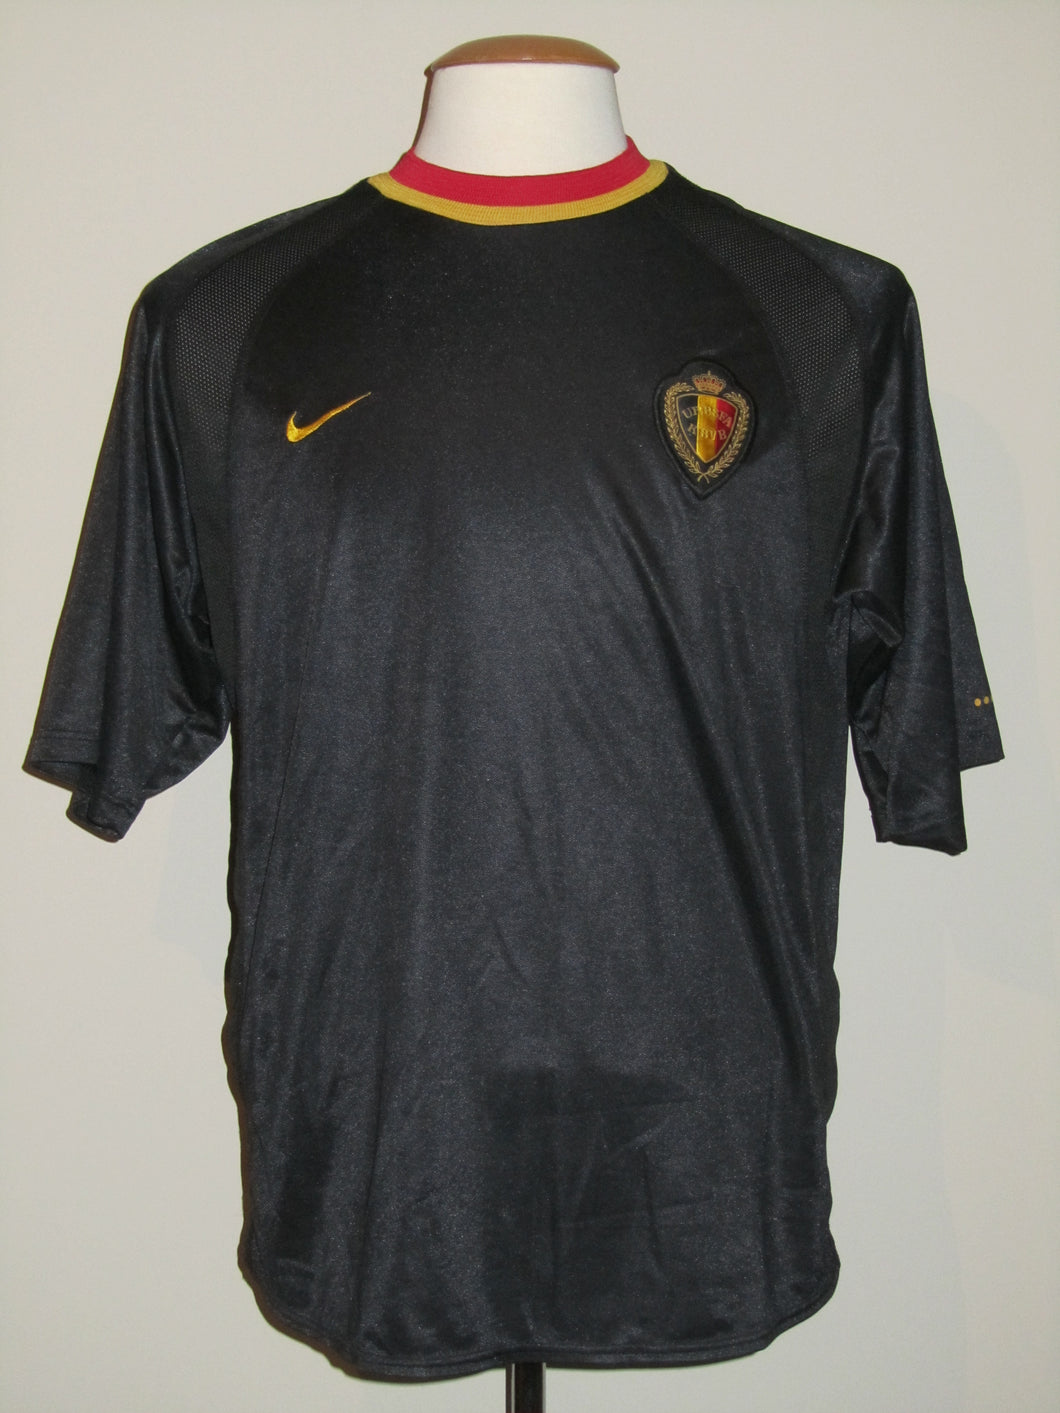 Rode Duivels 2000 EK away shirt